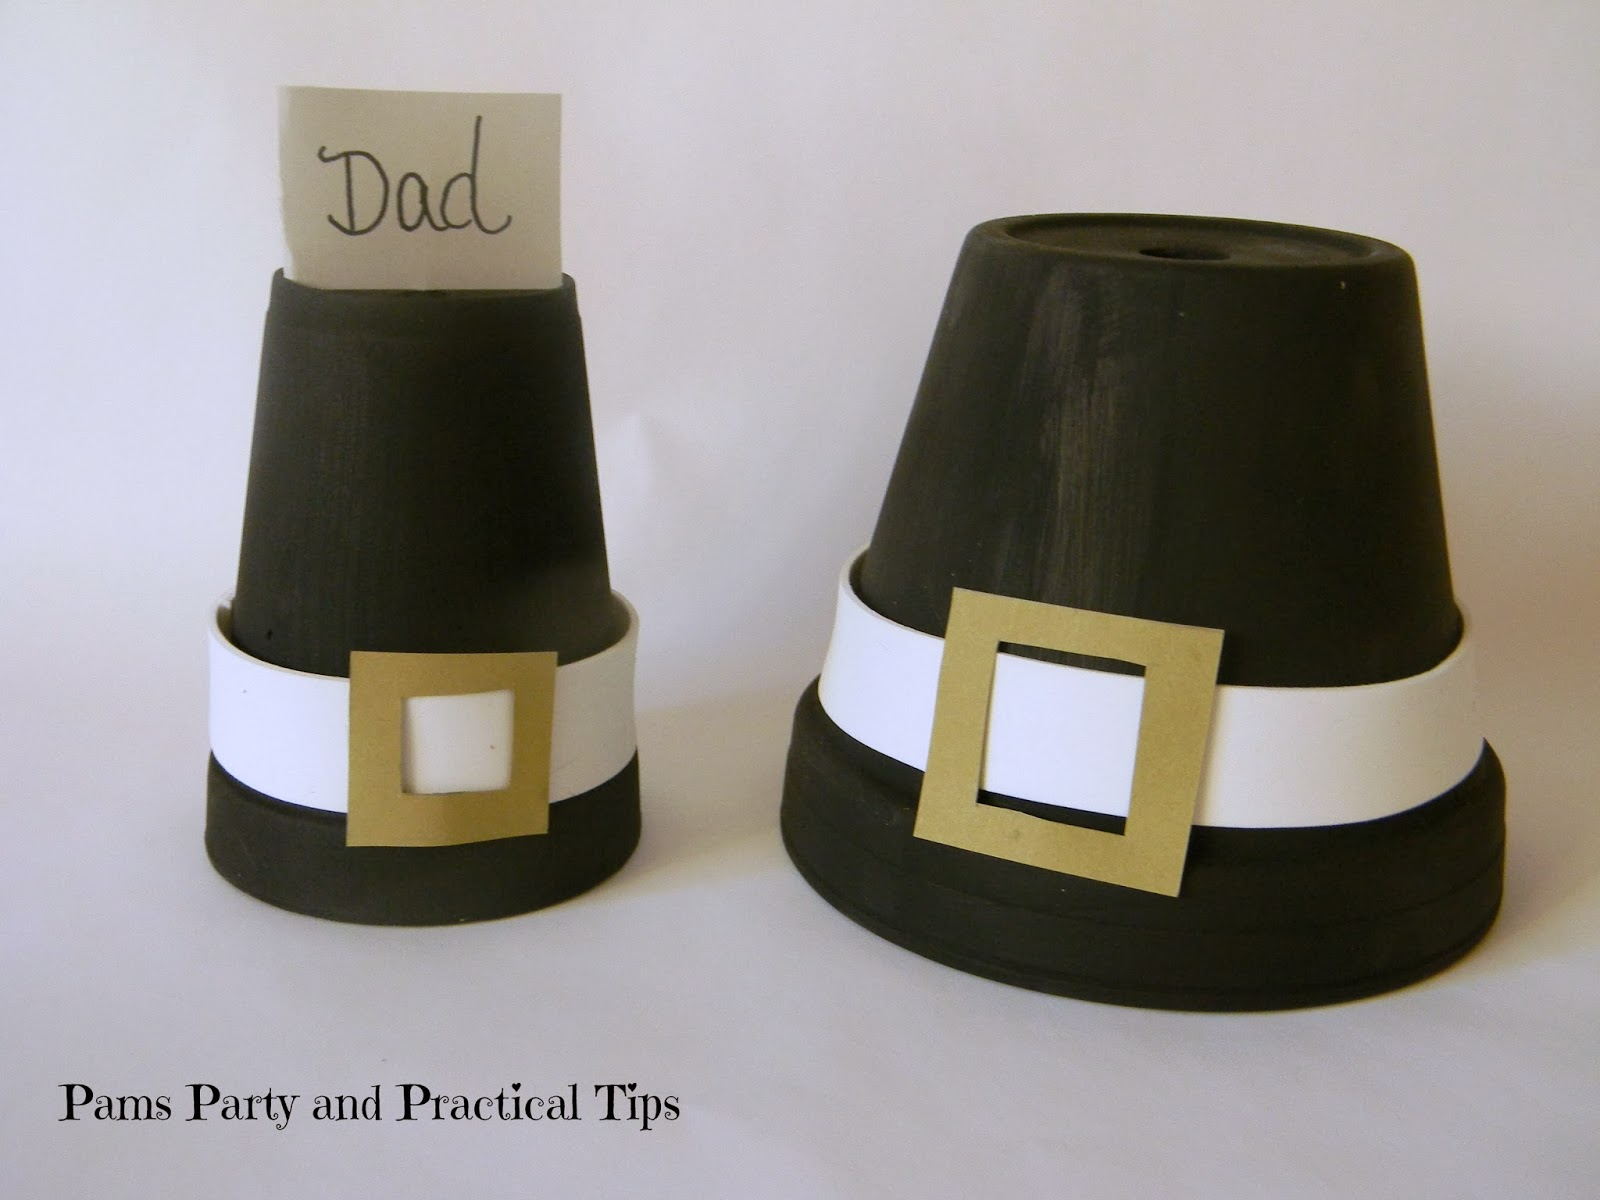 Pams Party & Practical Tips: Last Minute Pilgrim Hat Crafts